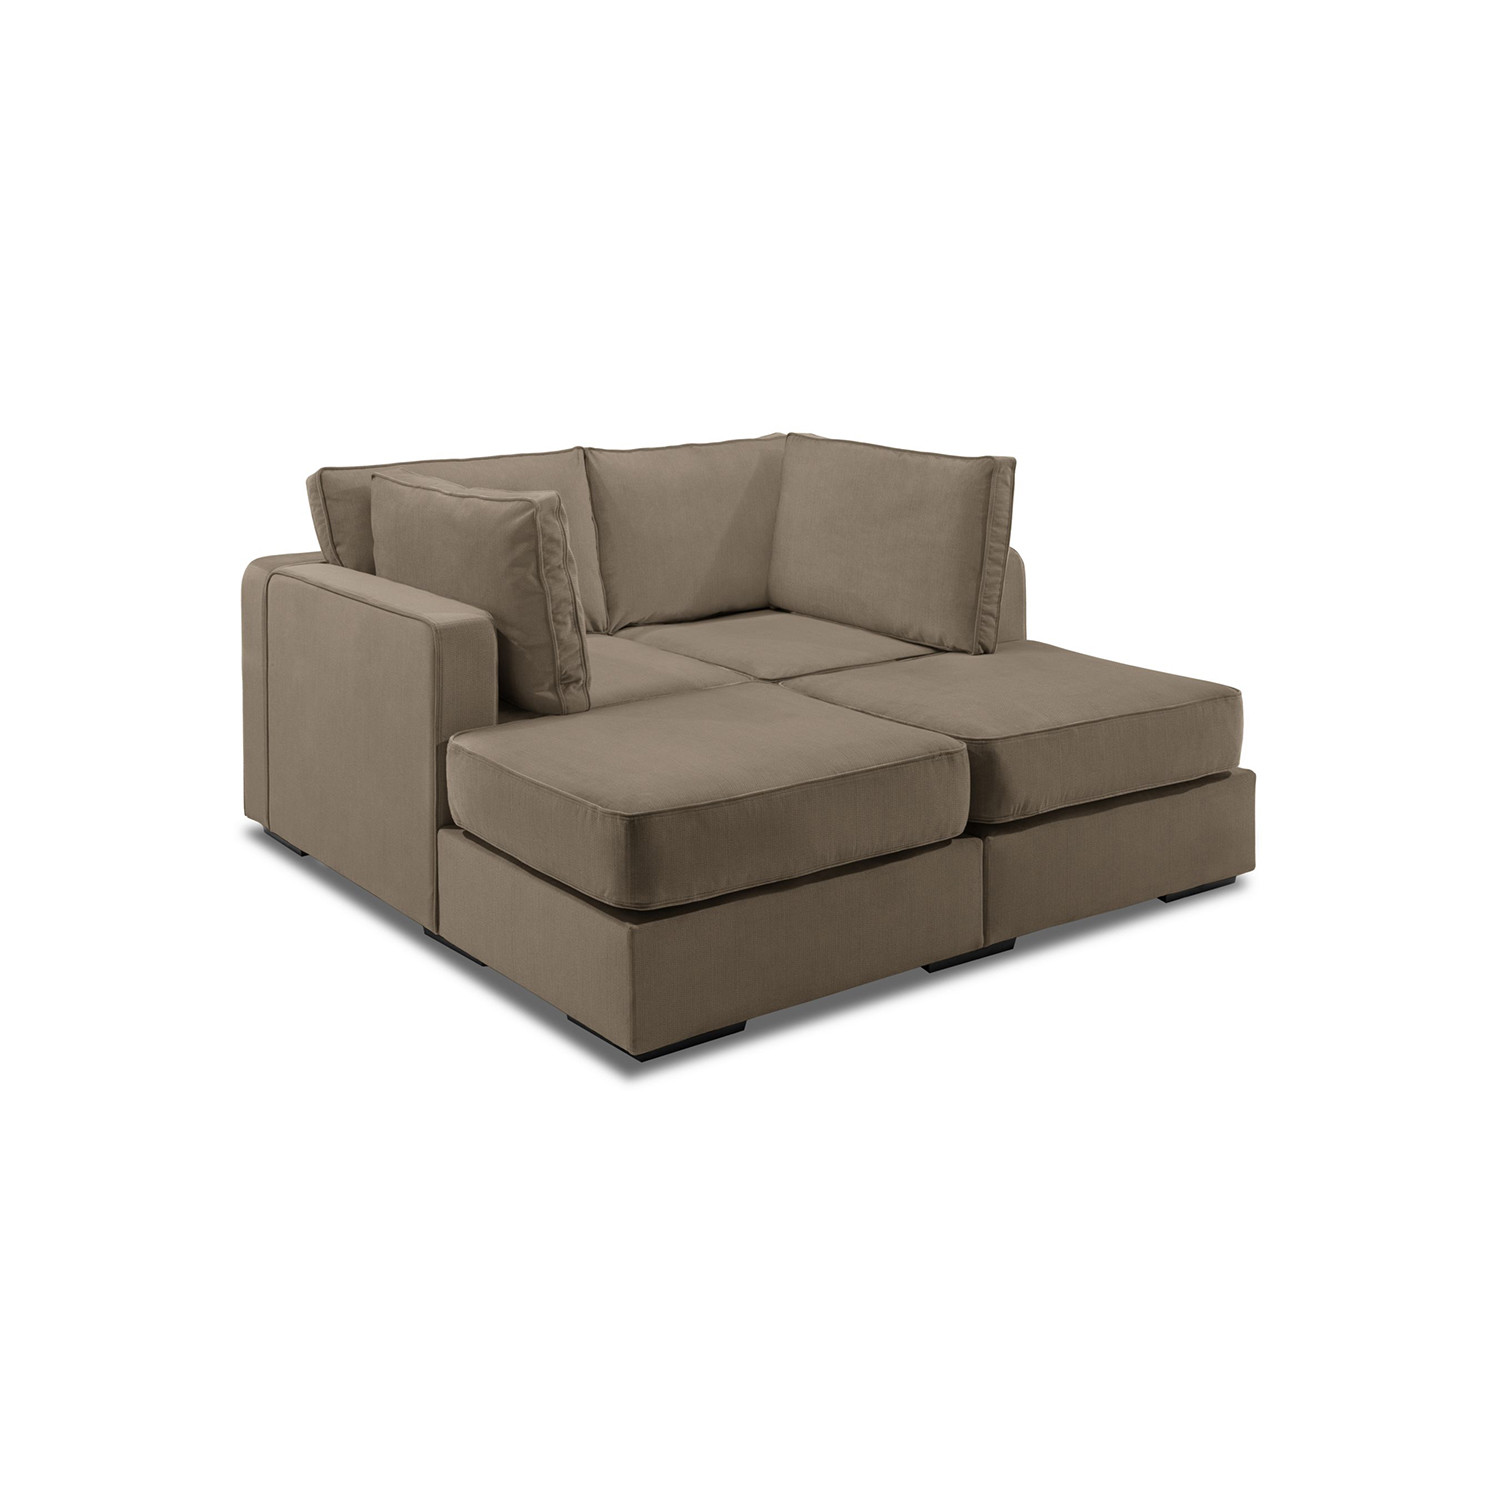 Lovesac Sofa For Sale: 5 Series Sactionals // Movie Lounger (Taupe)